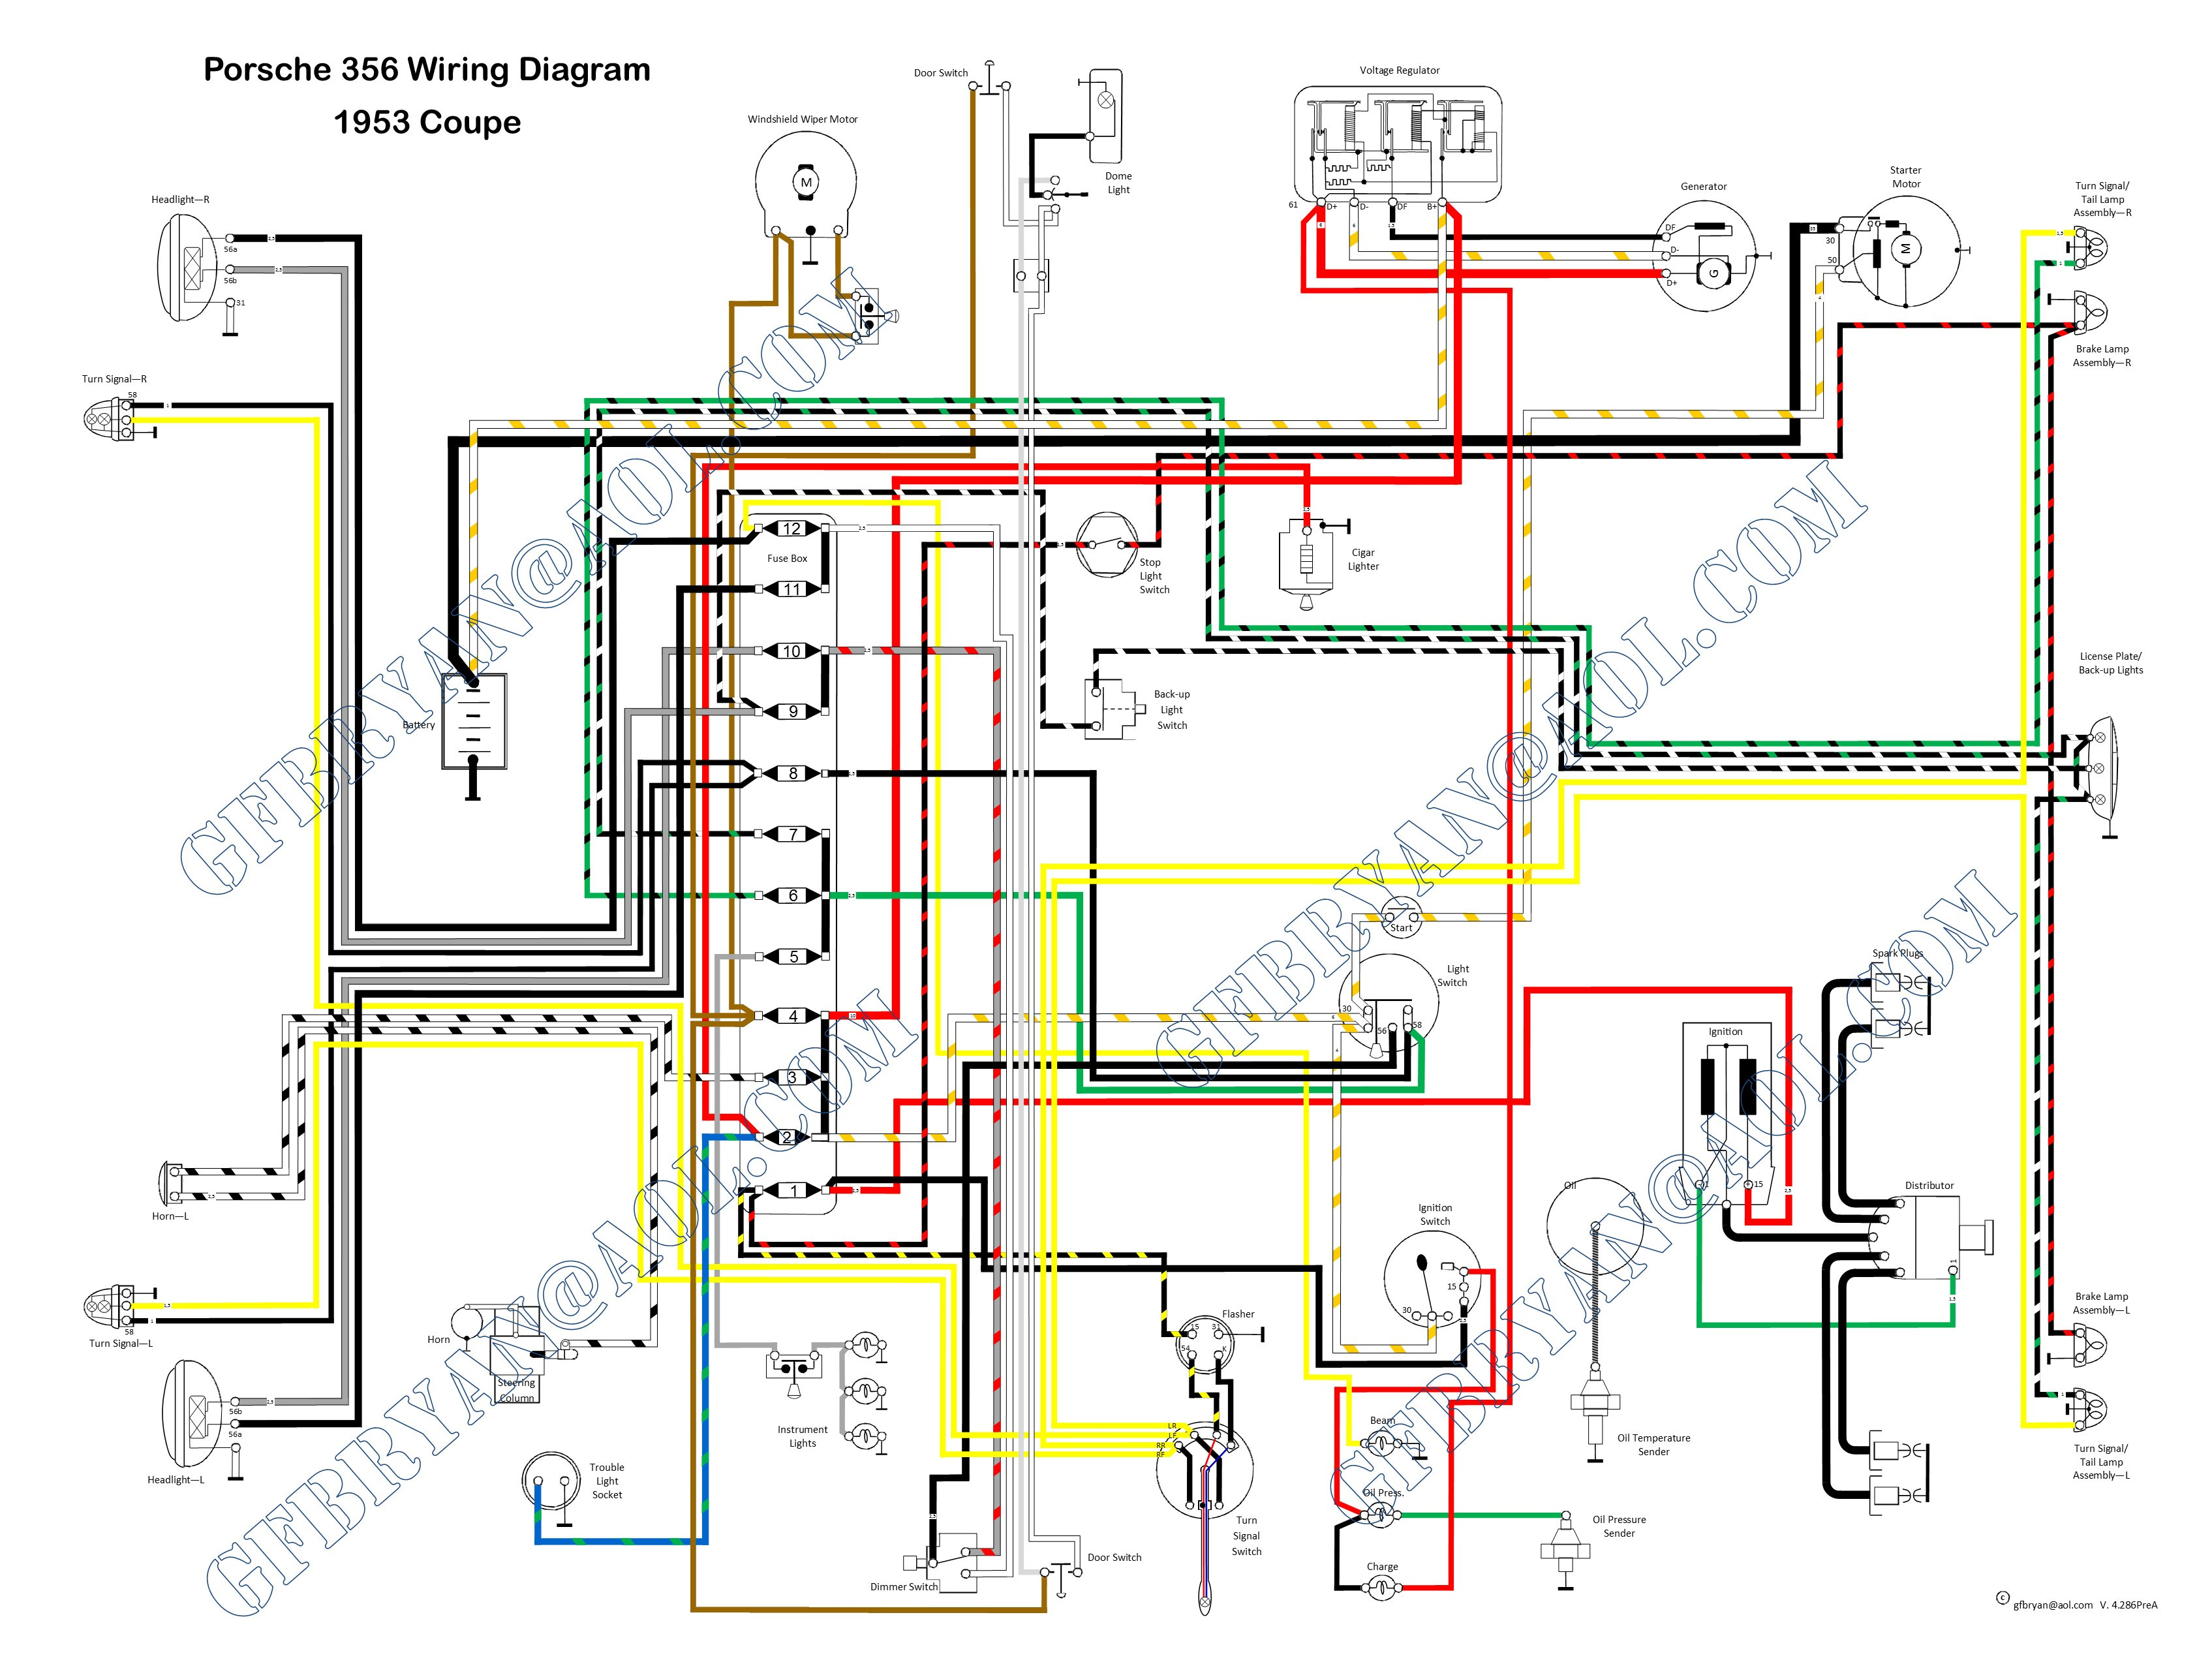 Lighting Contactor Wiring Diagram Photocell Ys 1079] How Do I Wire A Cell Switch Free Diagram Of Lighting Contactor Wiring Diagram Photocell